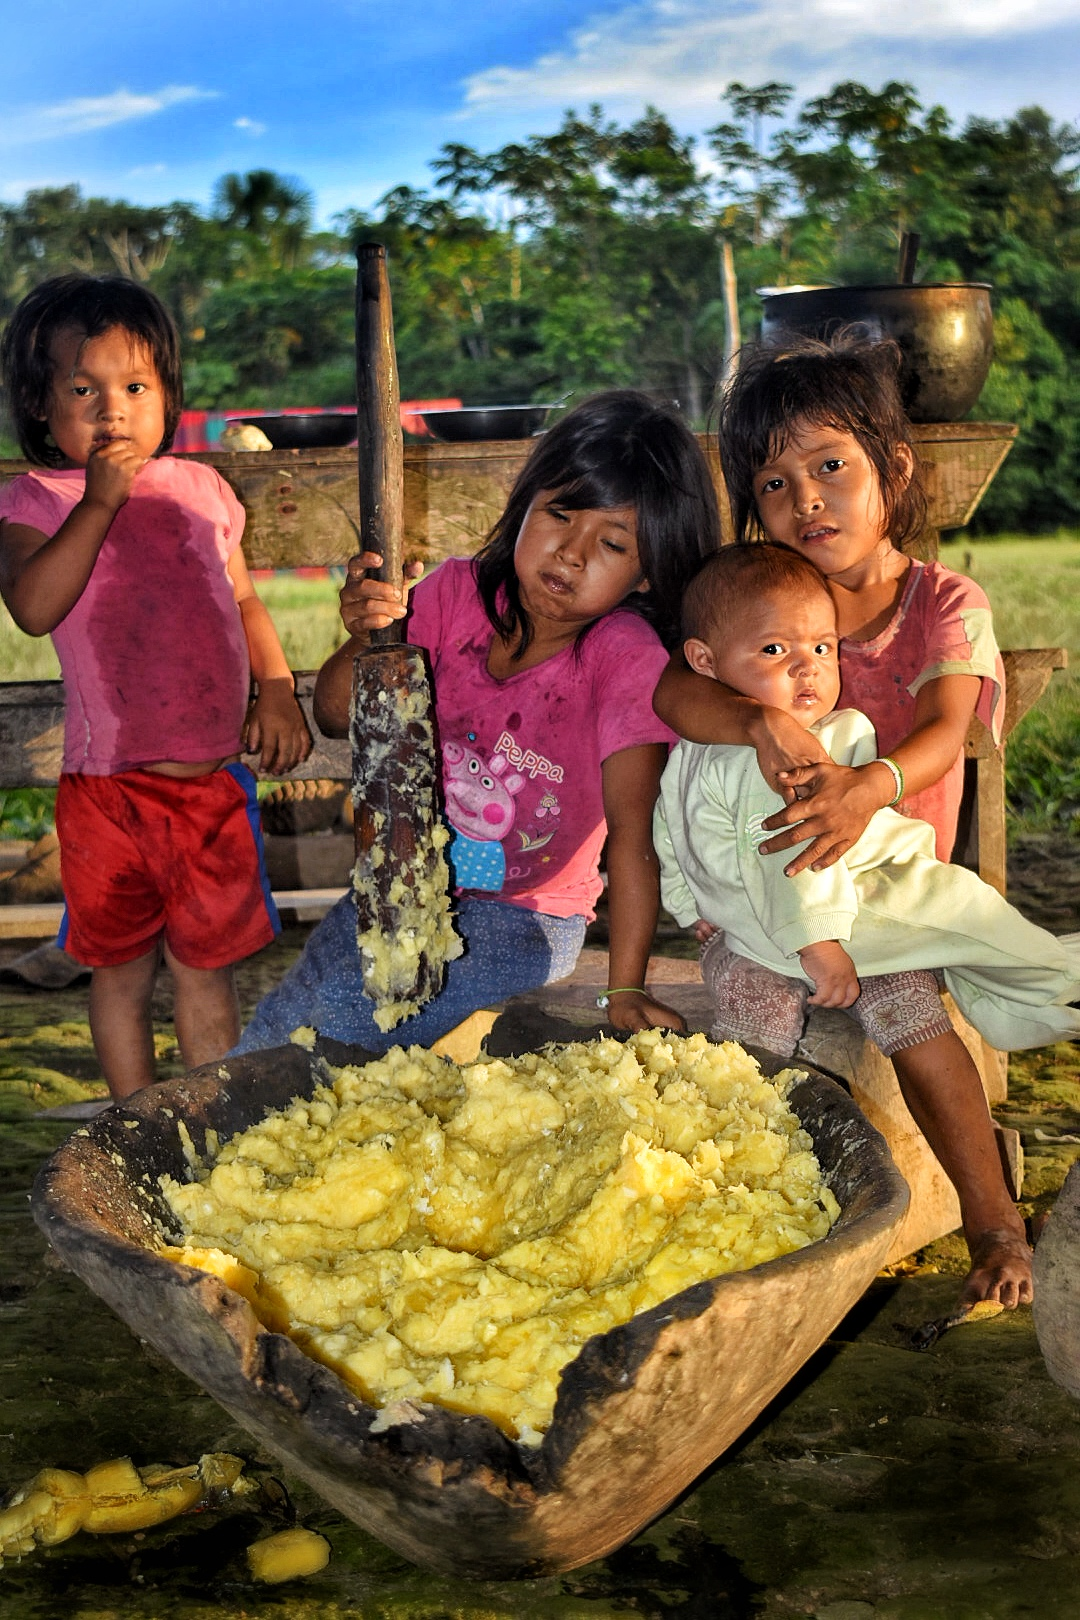 A group of children, stirring a vat of chica. Image by Scott Haber.